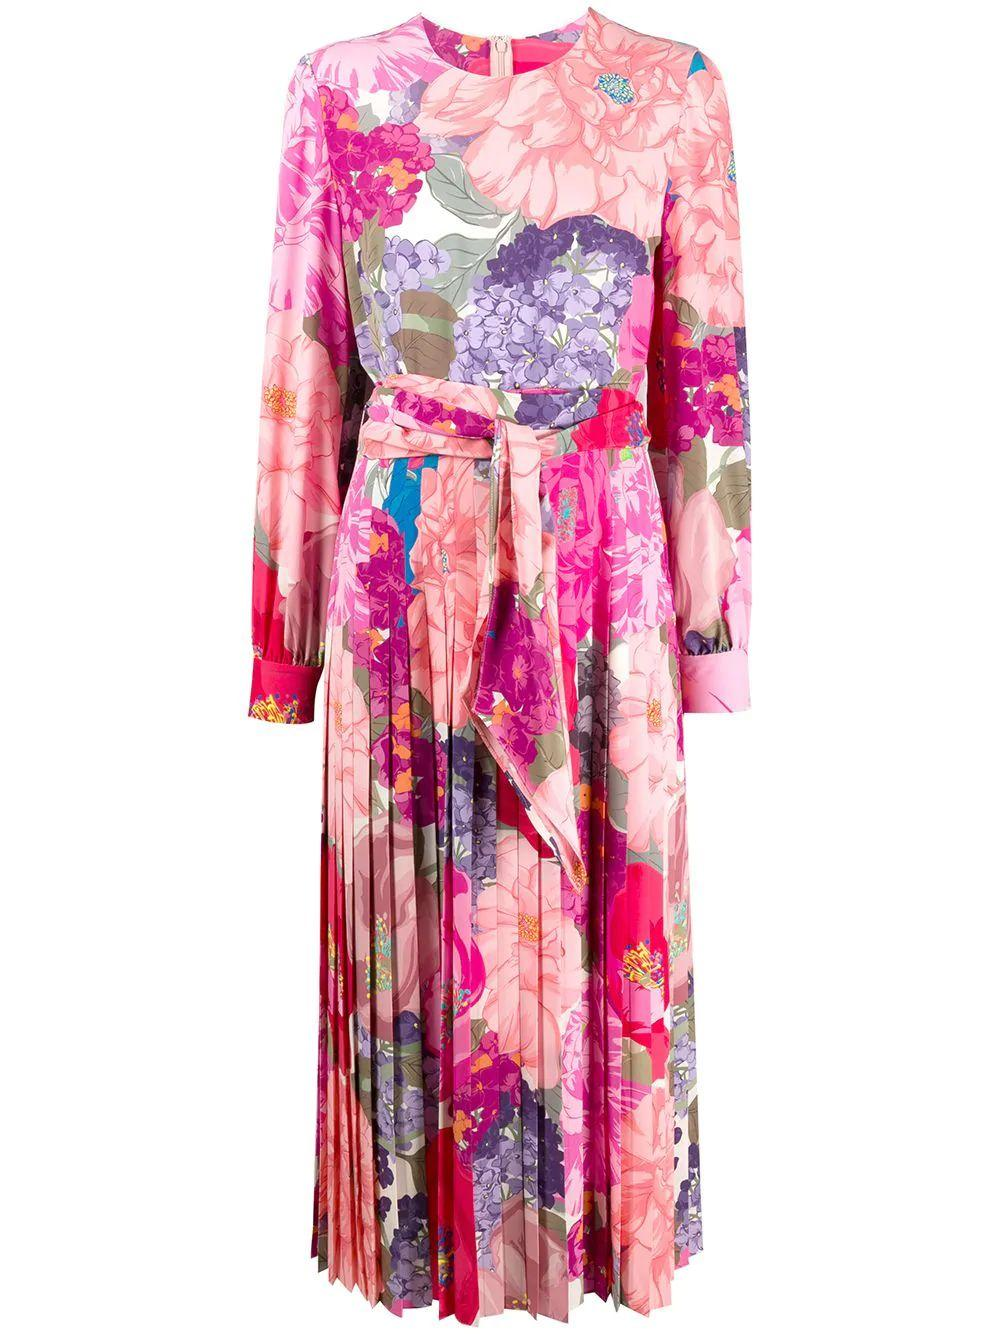 Floral Crepe De Chine Dress